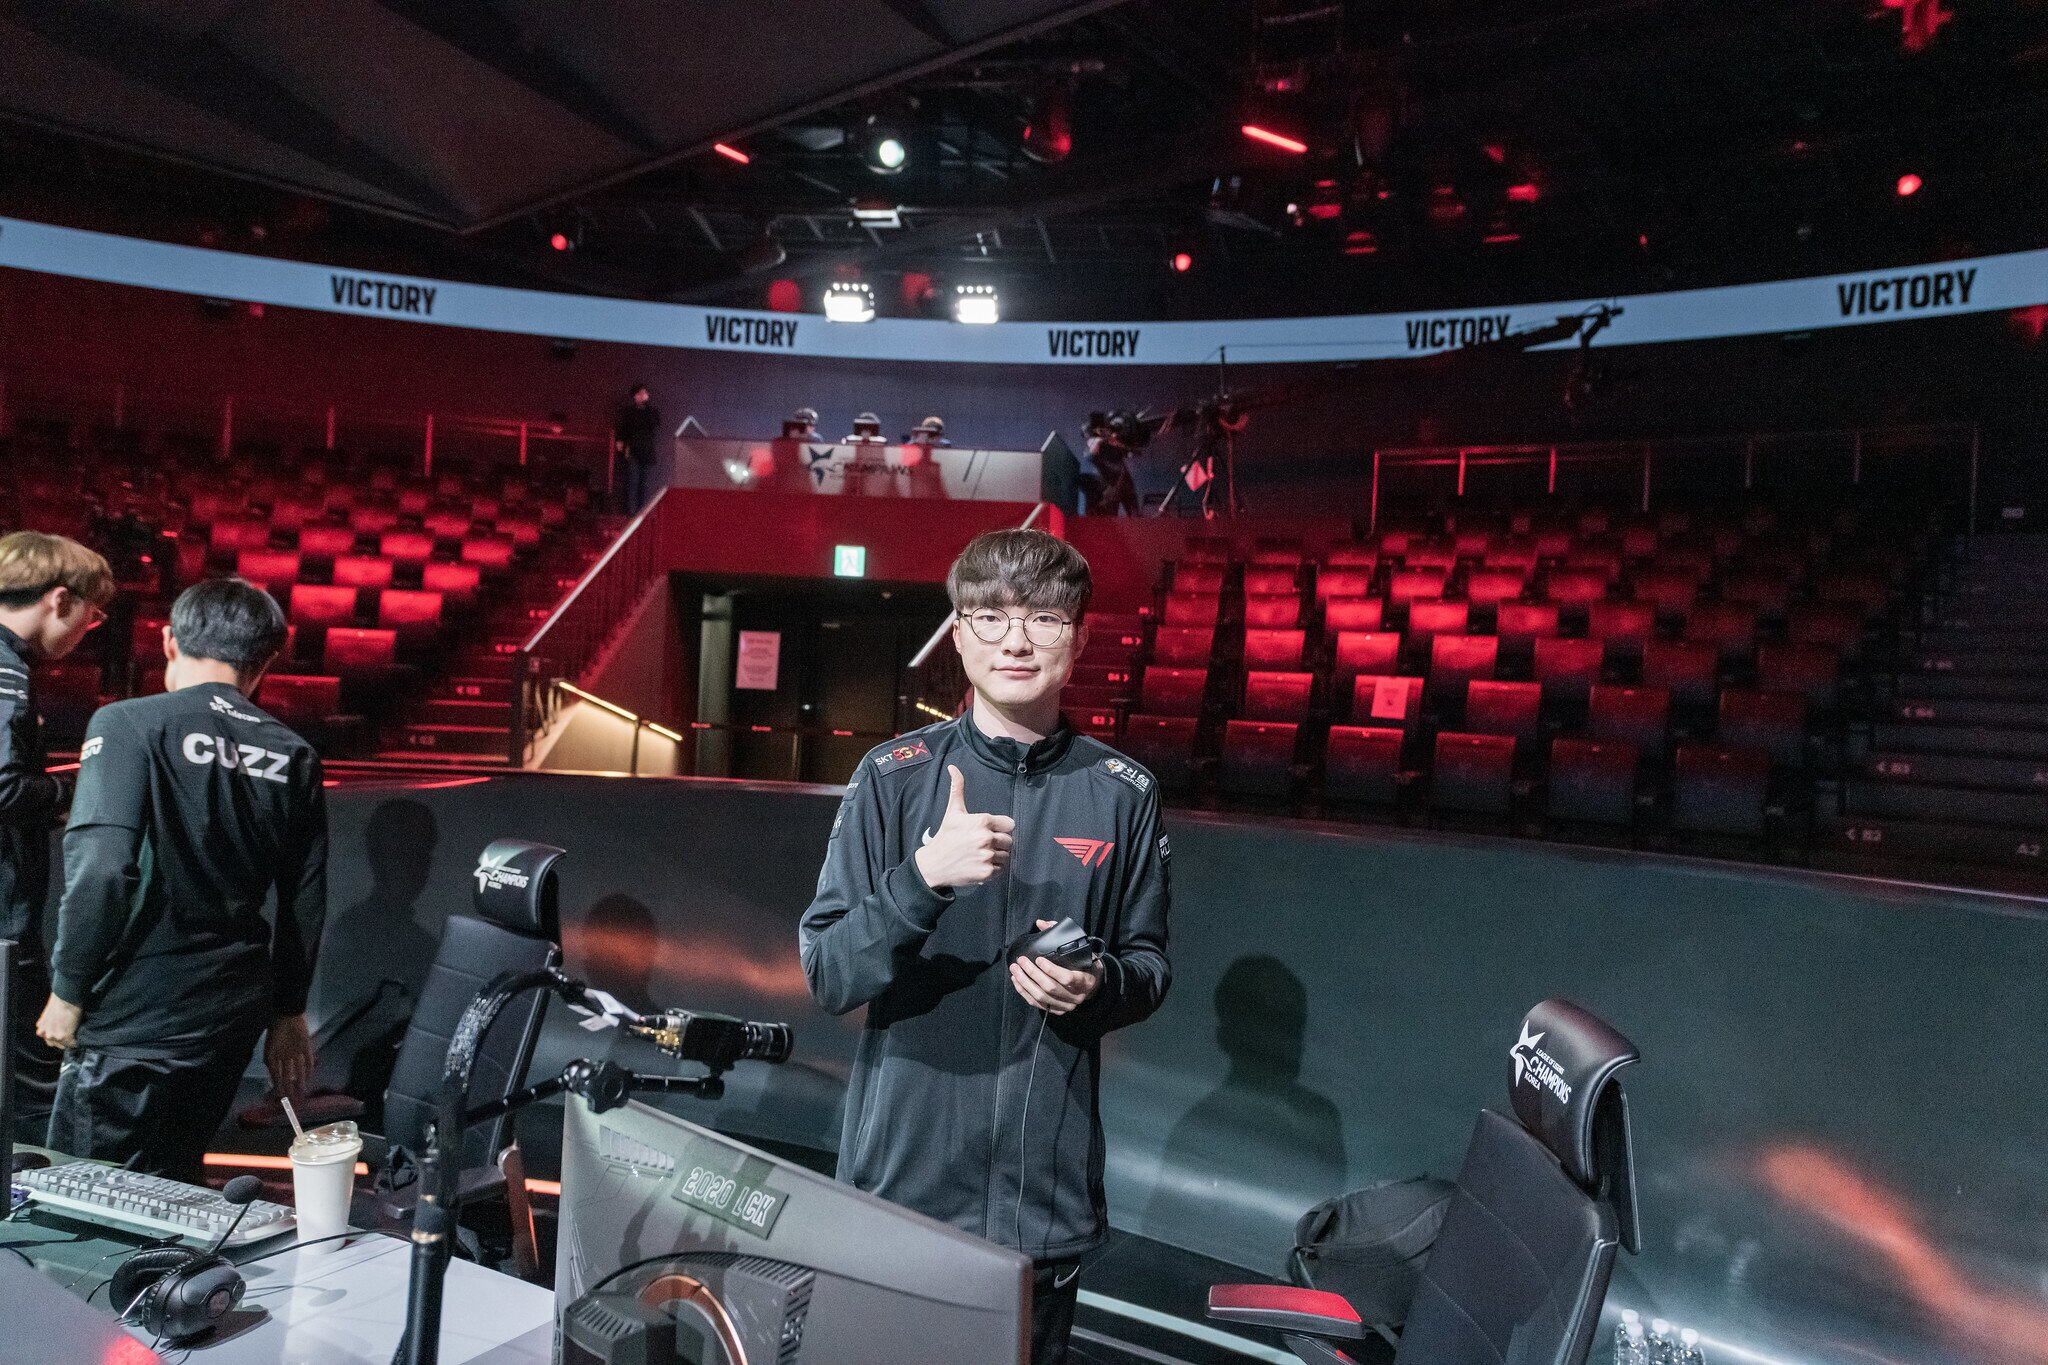 Faker thumbs up